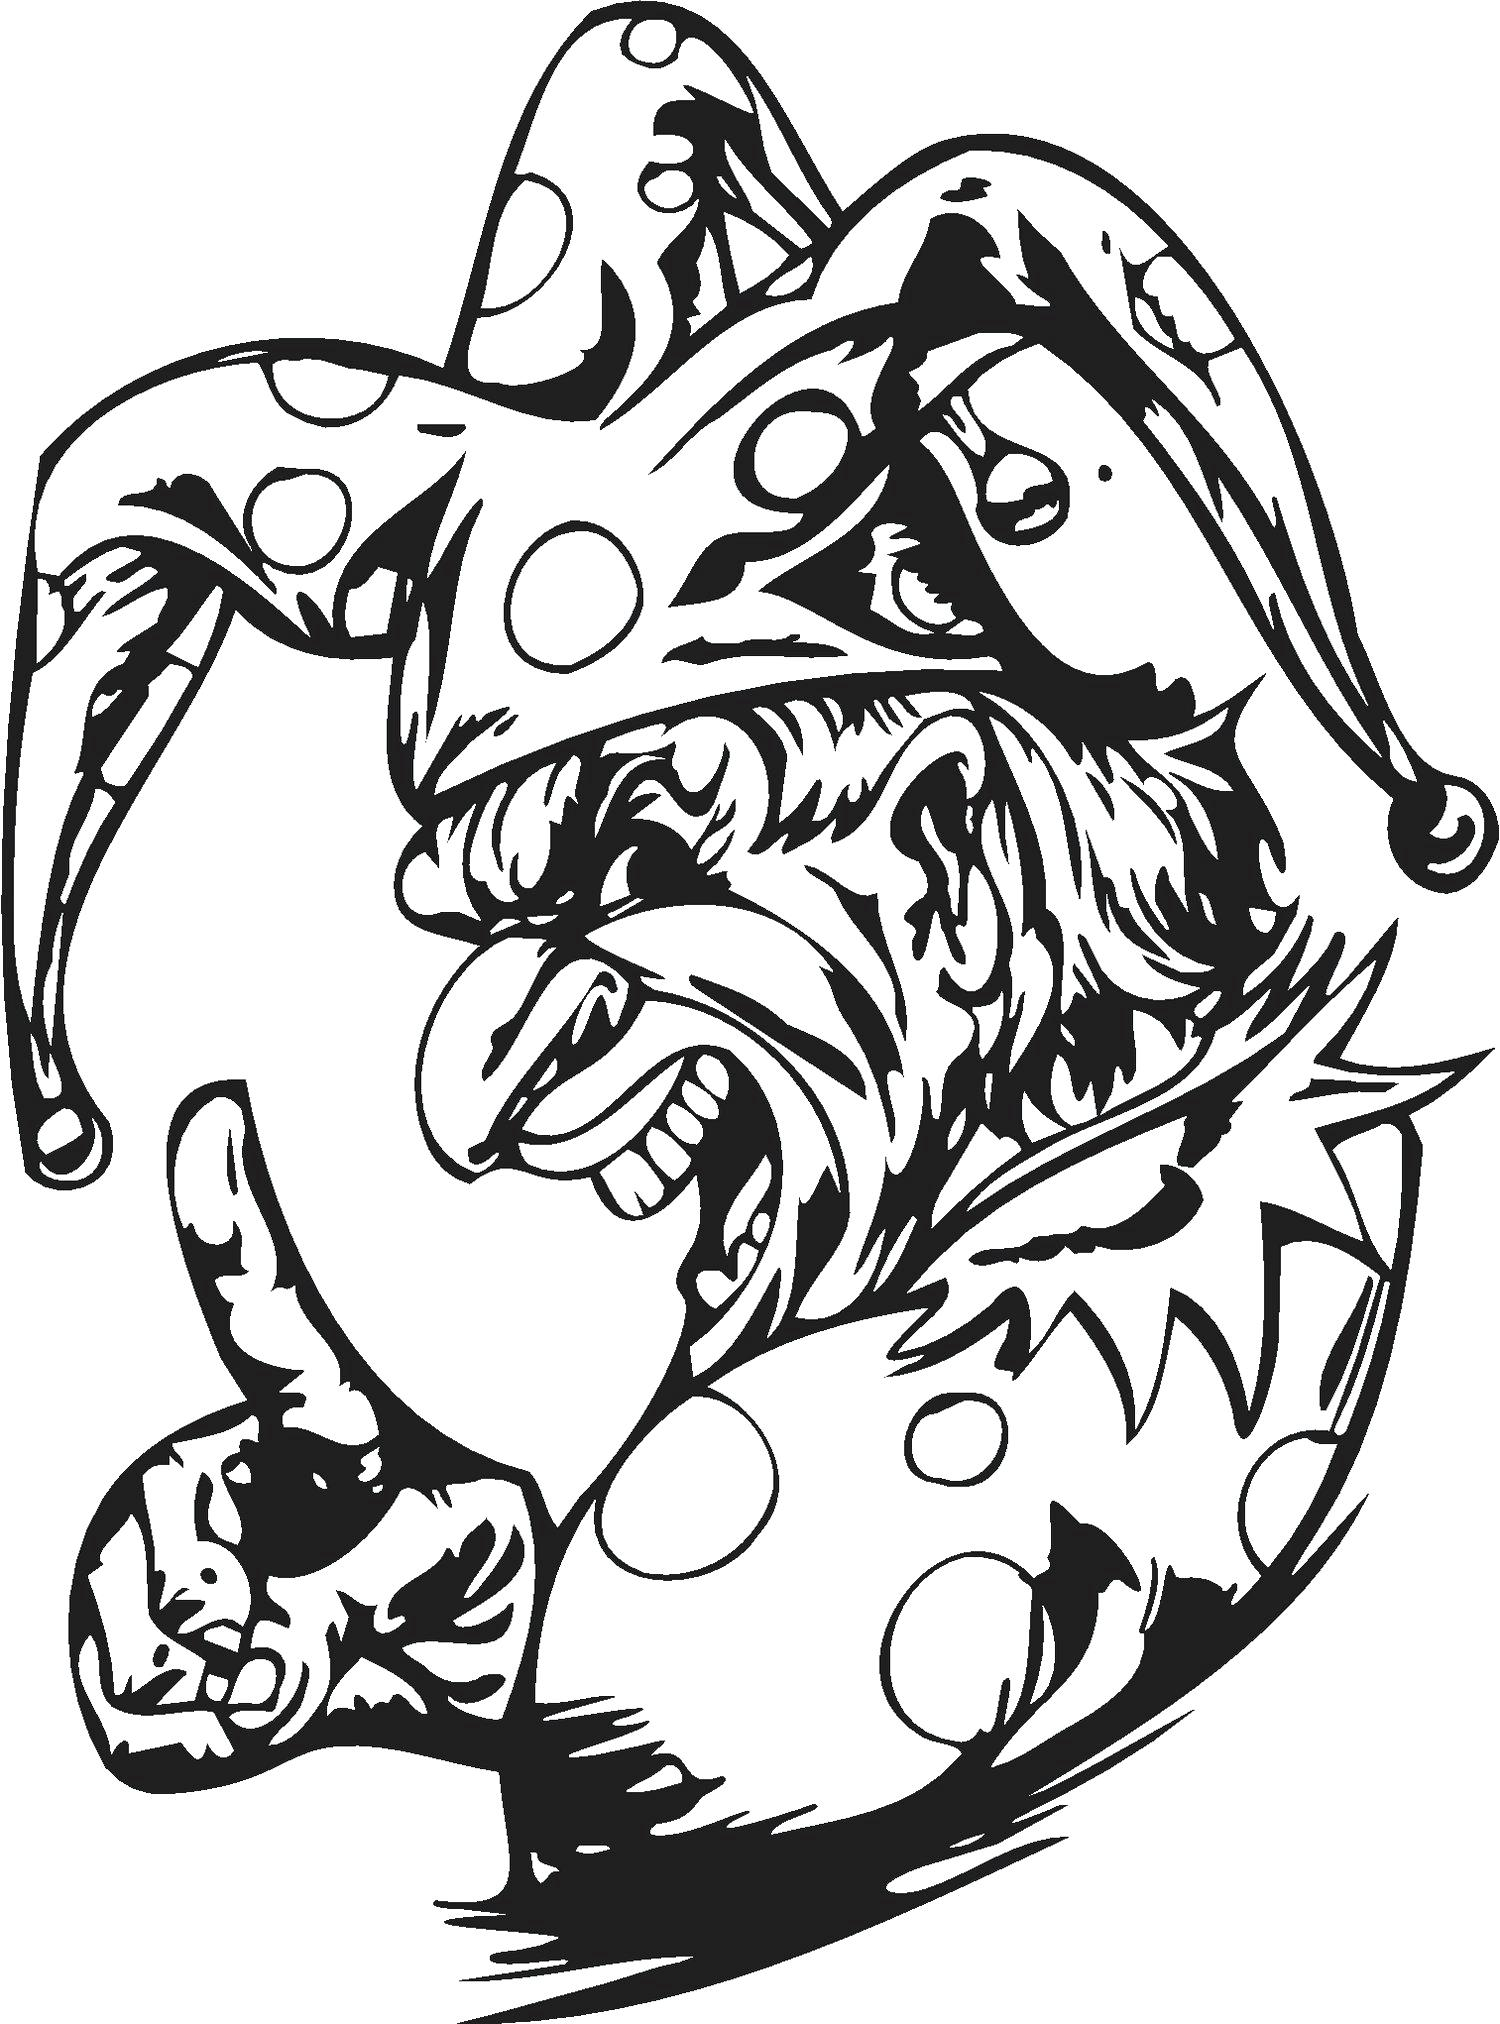 free clown coloring pages free printable clown coloring pages for kids free coloring clown pages